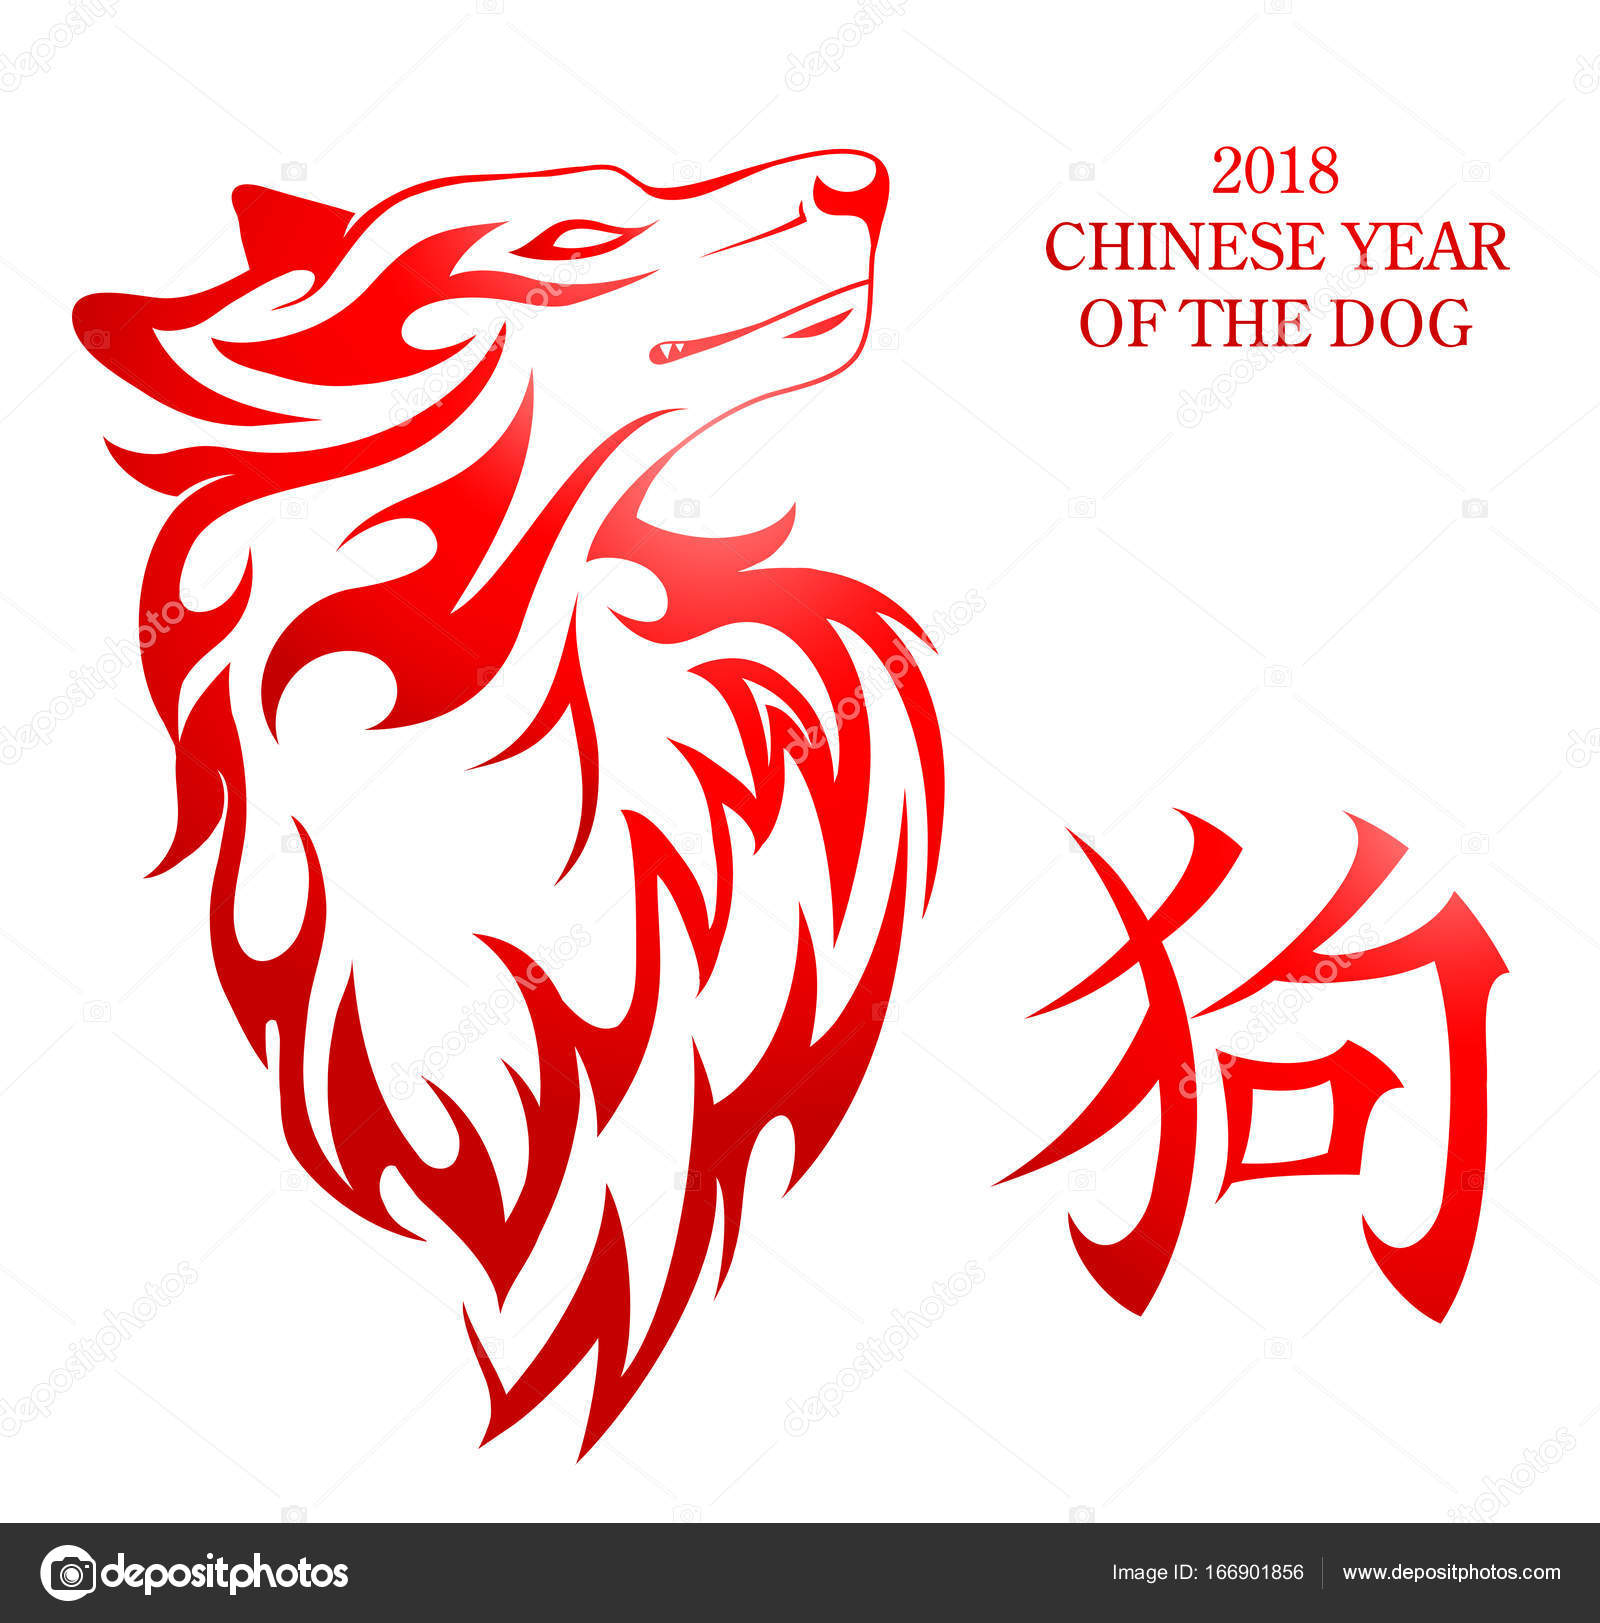 Dog as symbol chinese new year 2018 stock vector akvlv 166901856 dog as symbol chinese new year 2018 stock vector buycottarizona Gallery